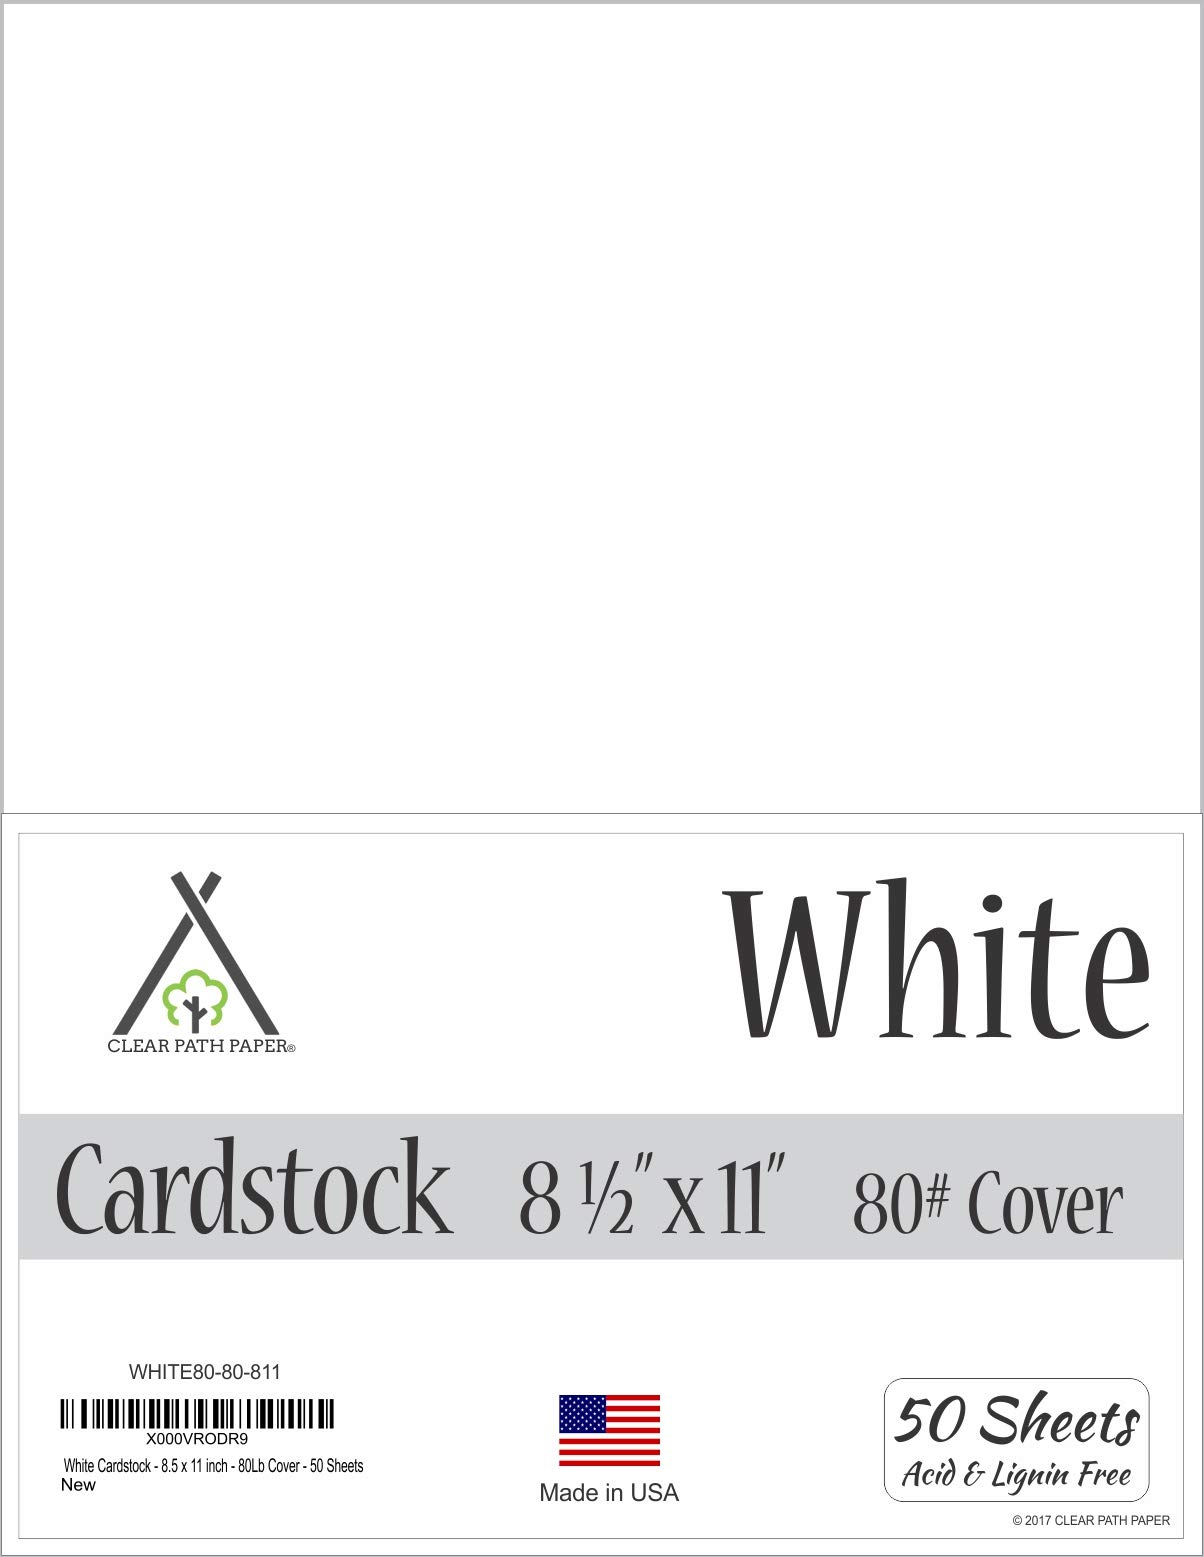 White Cardstock - 8.5 x 11 inch - 80Lb Cover - 50 Sheets